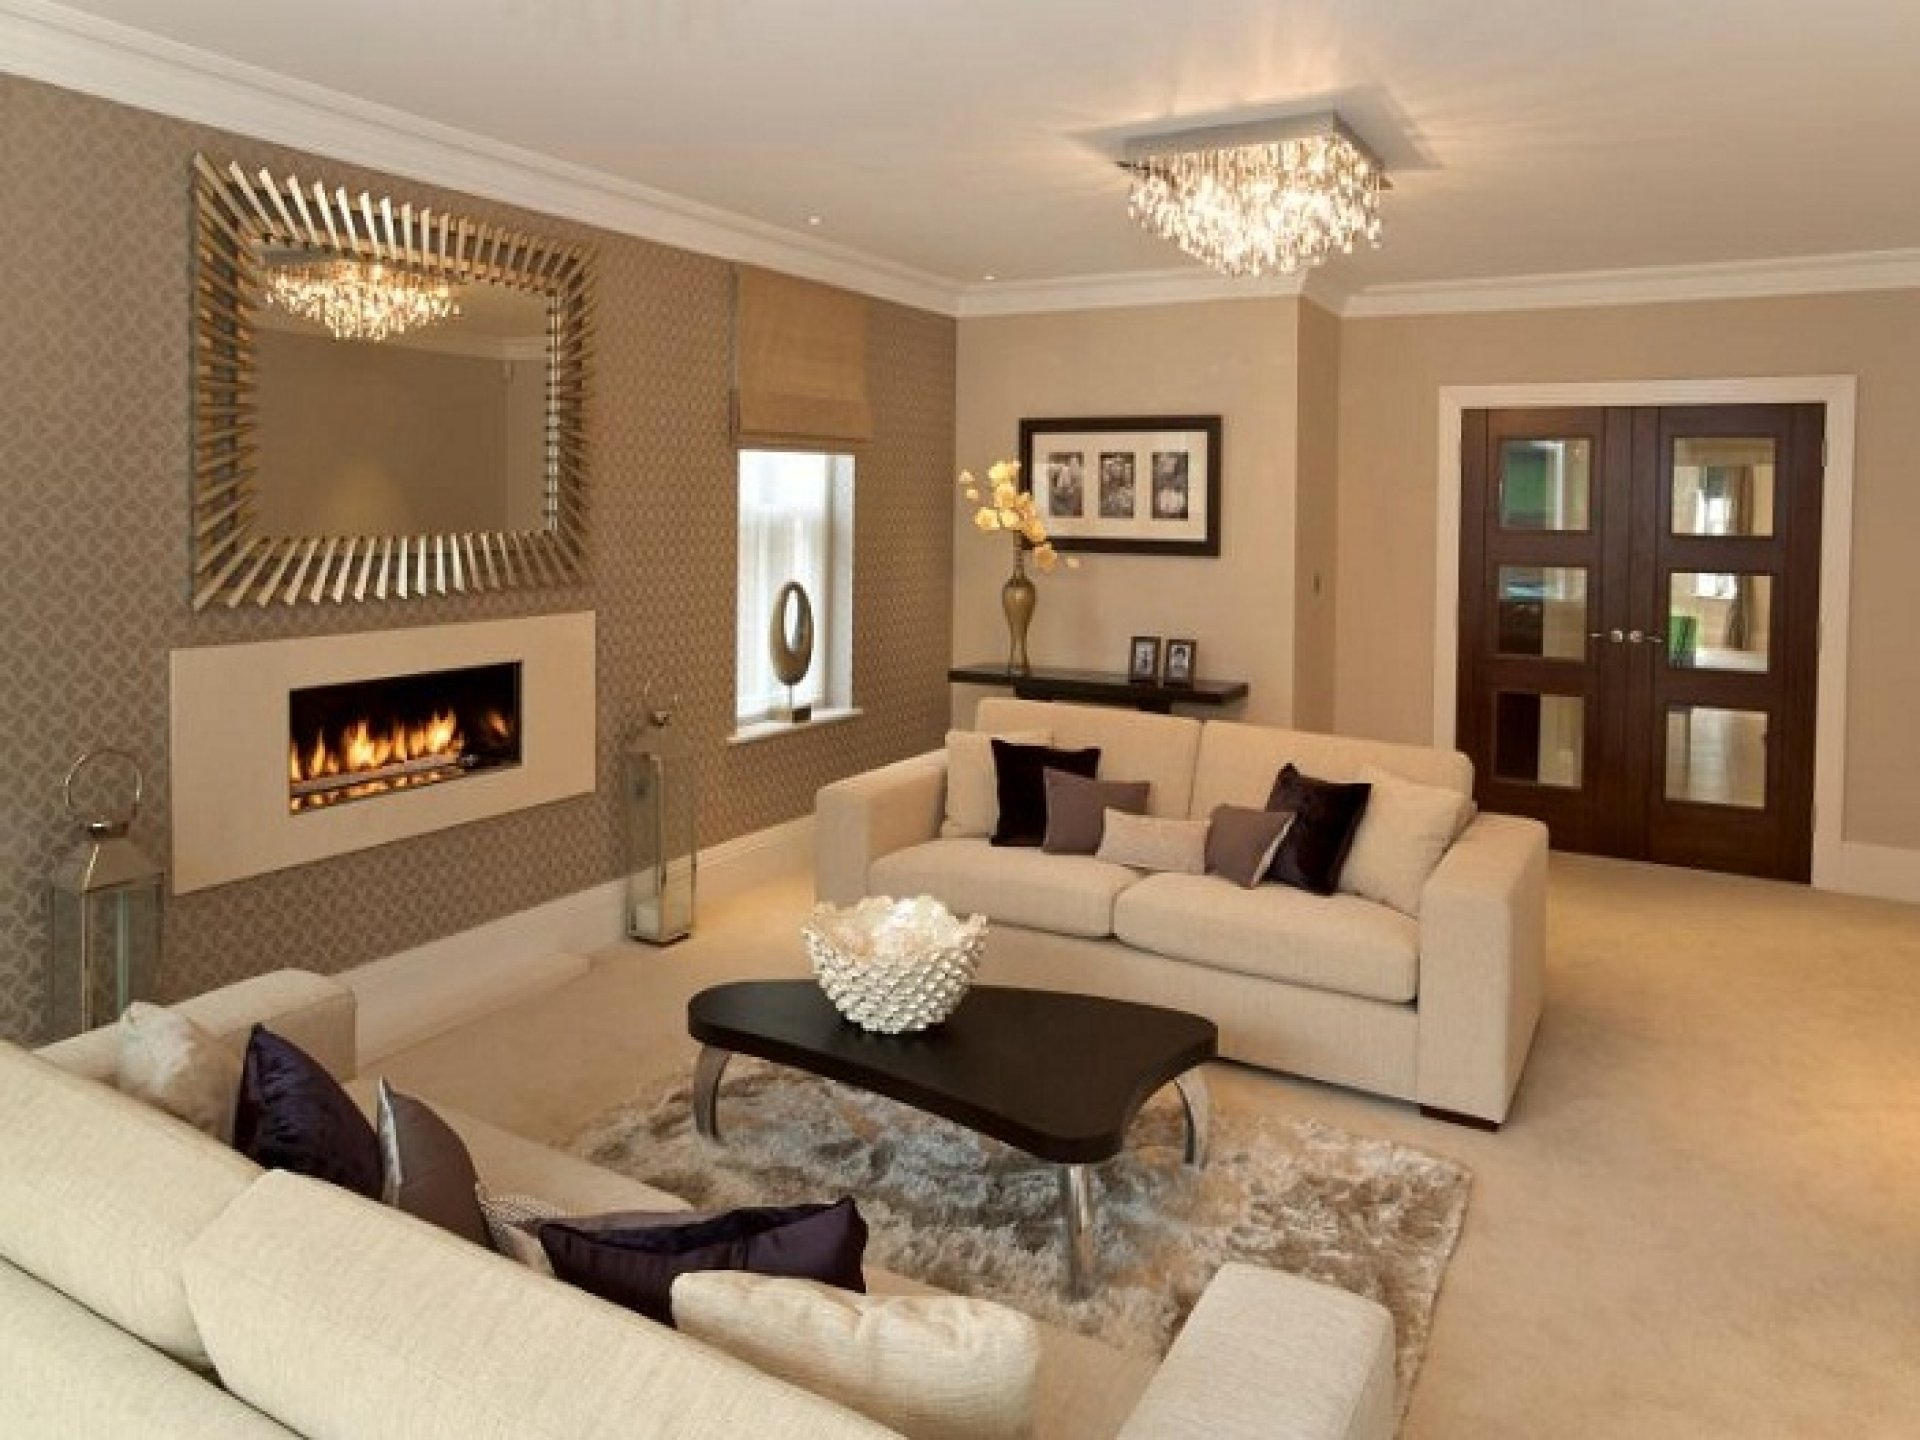 10 Lovely Living Room Paint Ideas Pictures modern living room furniture ideas paint colors for living rooms 4 2021